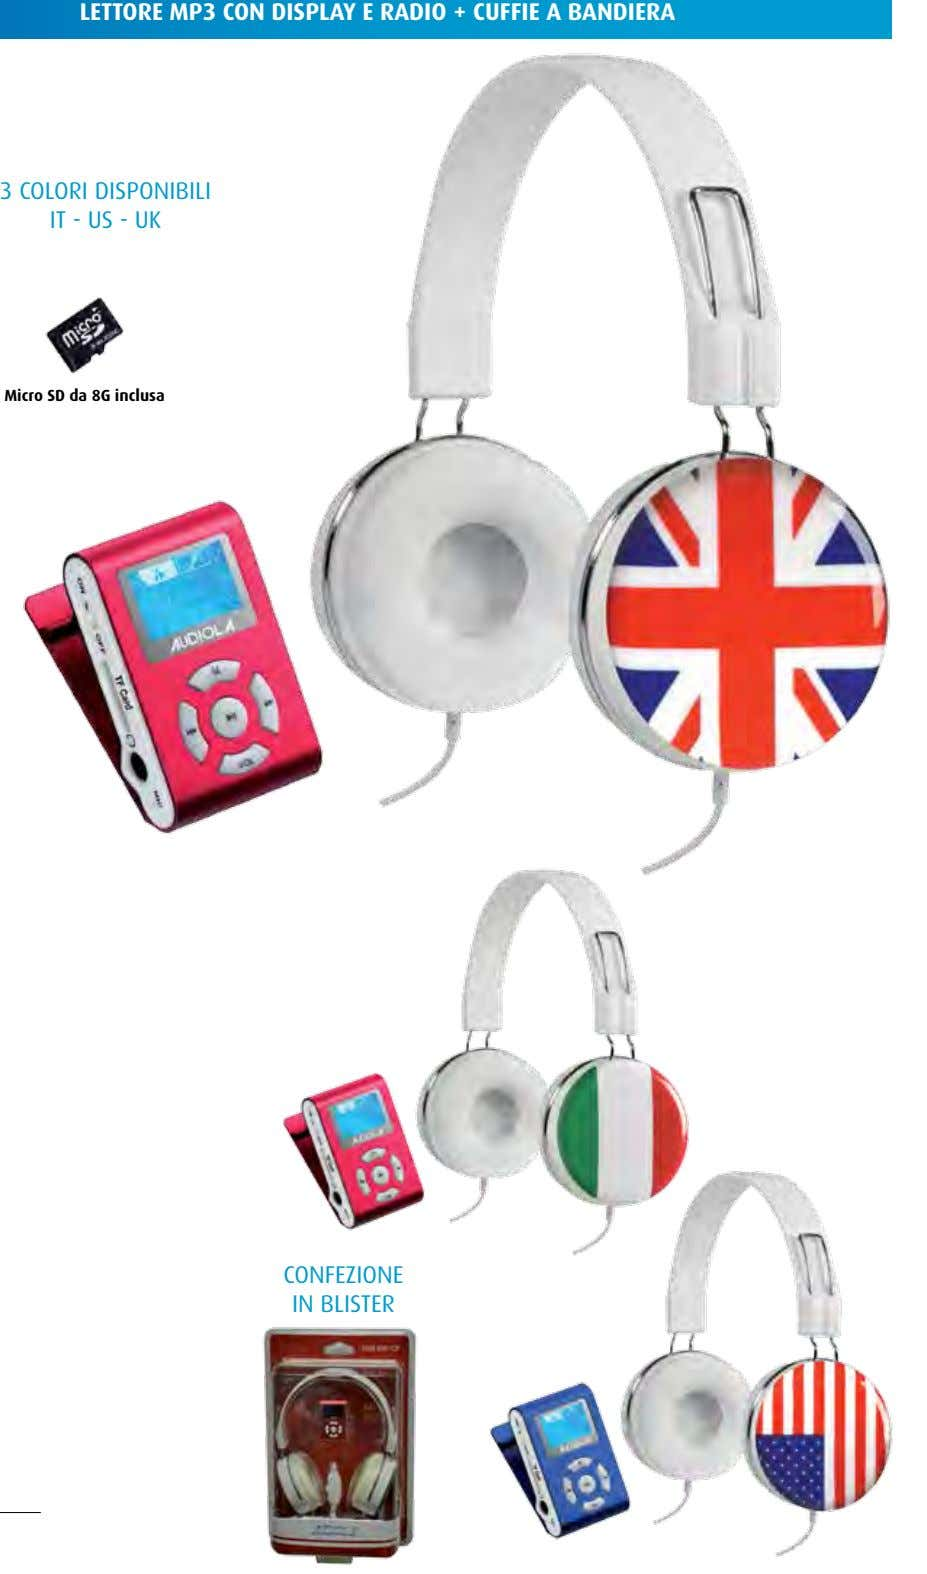 LETTORE MP3 CON DISPLAY E RADIO + CUFFIE A BANDIERA 3 colori disponibili iT -